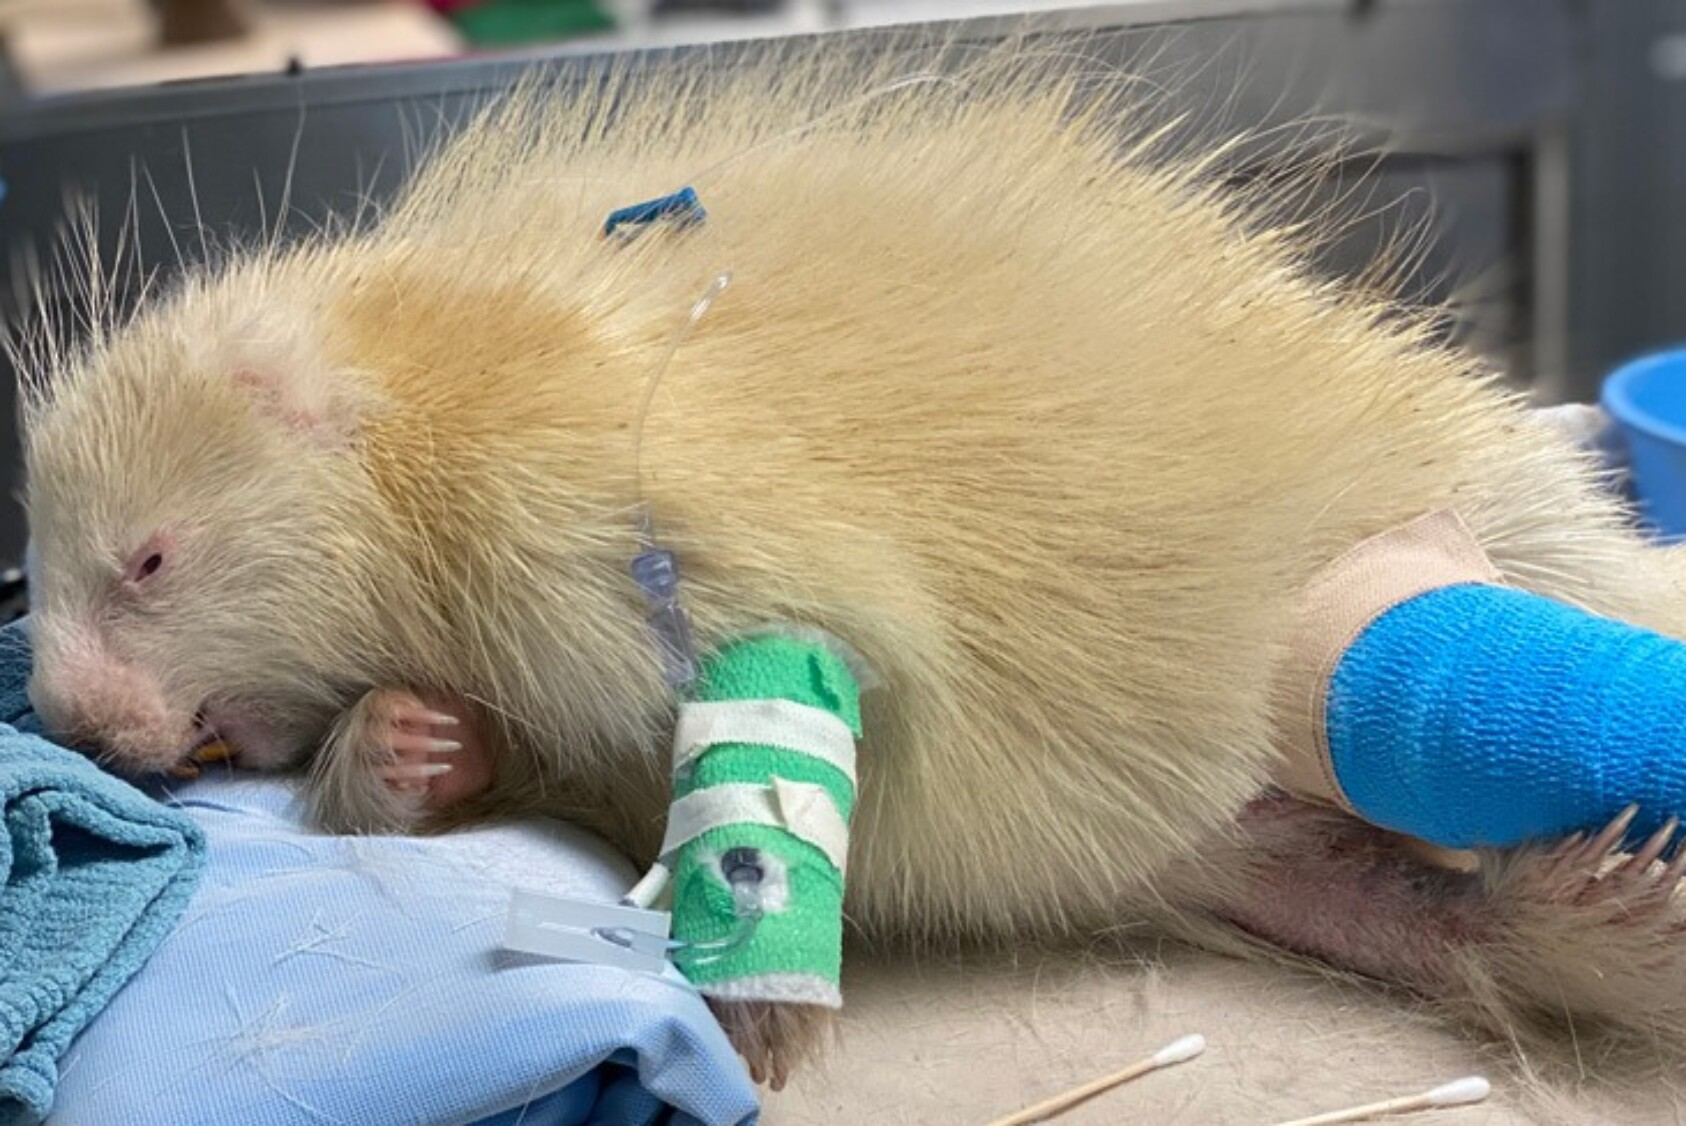 The porcupine was critically ill when it arrived at the hospital, requiring intravenous fluids and antibiotics.